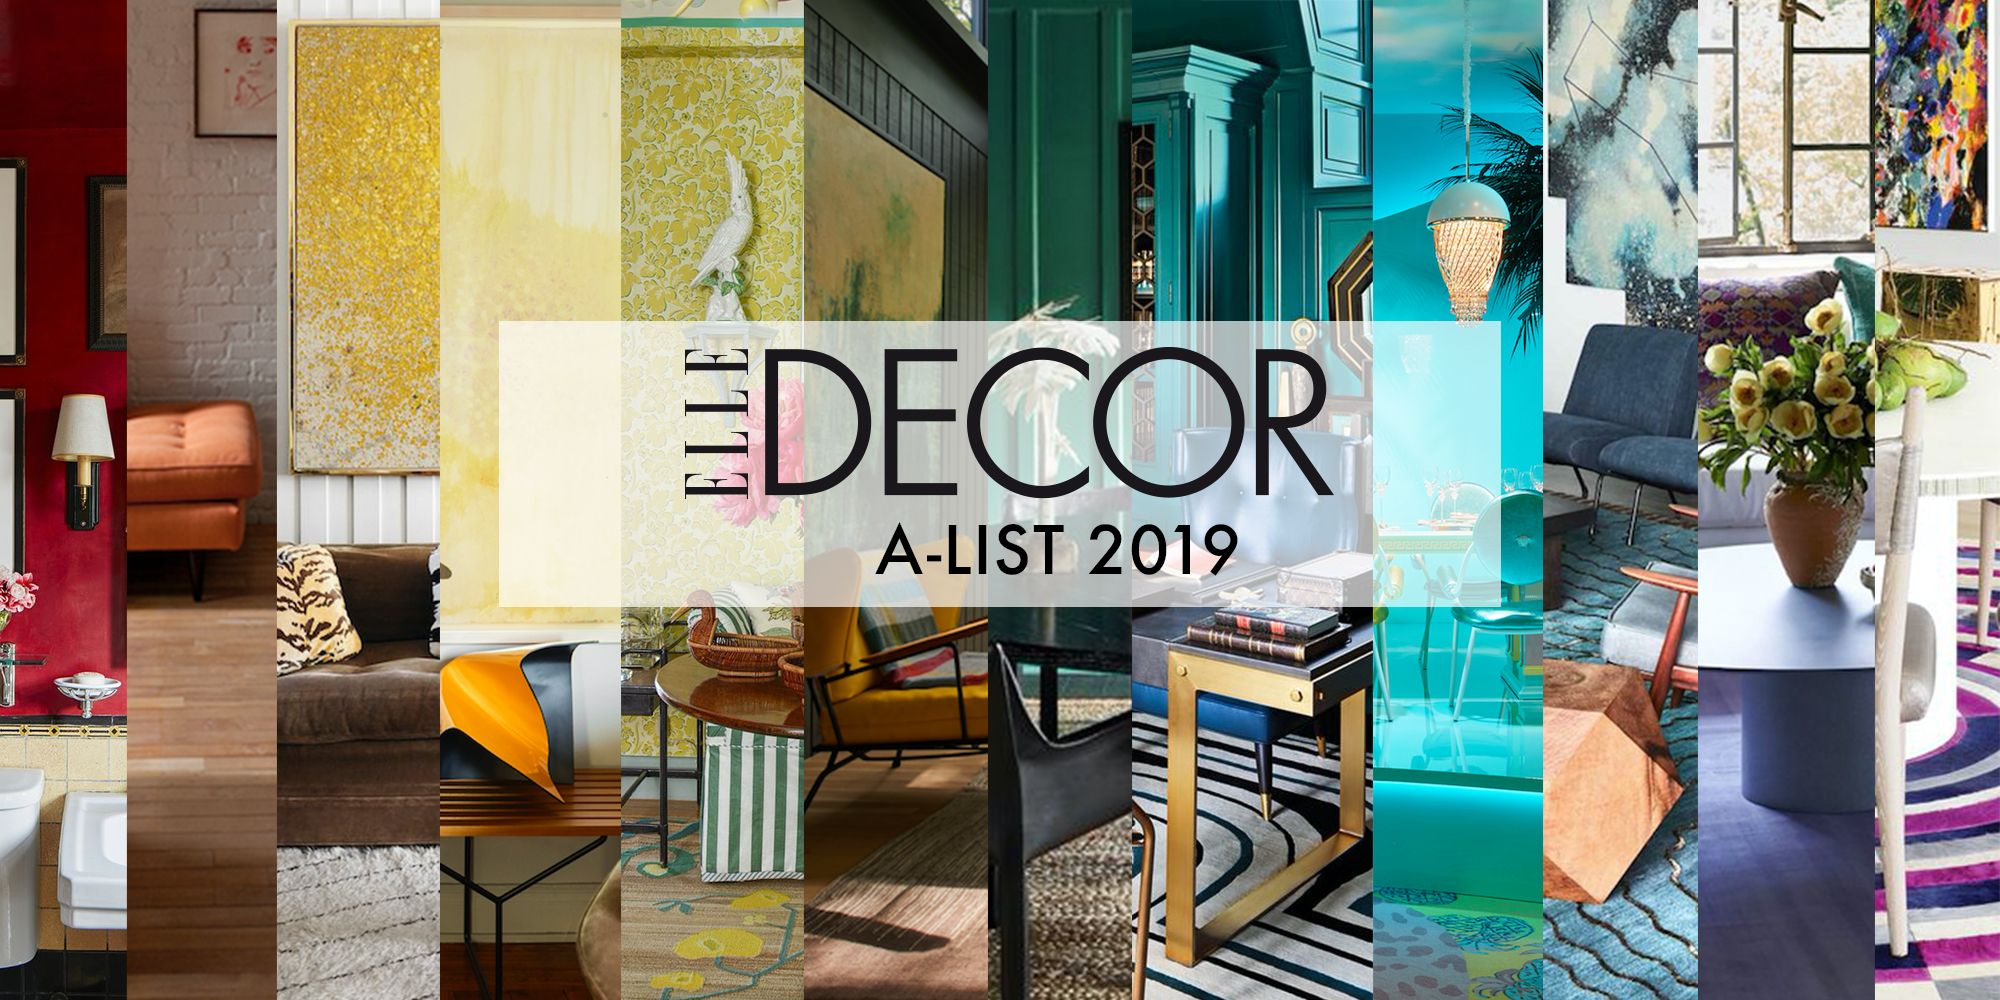 jewellery shop interior design ideas s where do interior designers shop The 2019 A-List: 100+ of the Best Interior Designers From Milan to Miami